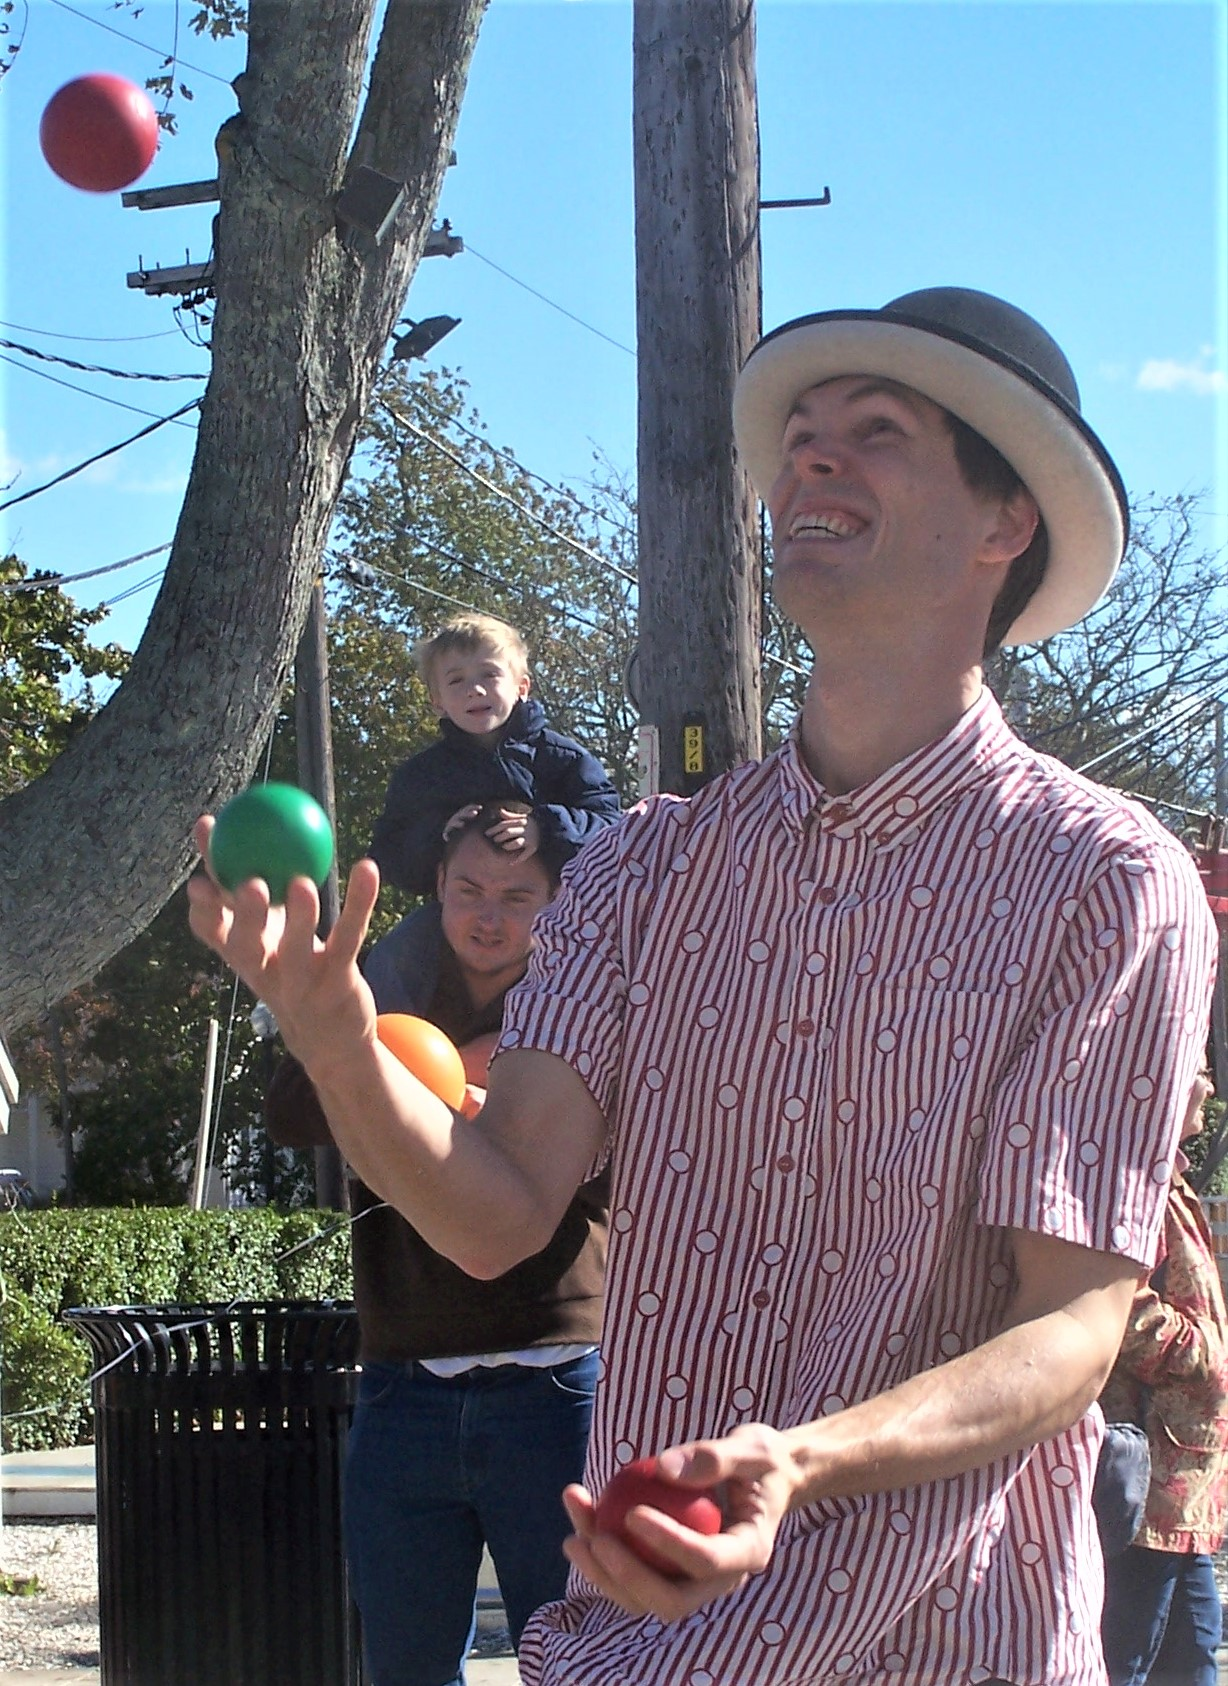 Trevor the Juggler will amaze and delight at Sunday's Hyannis Open Streets